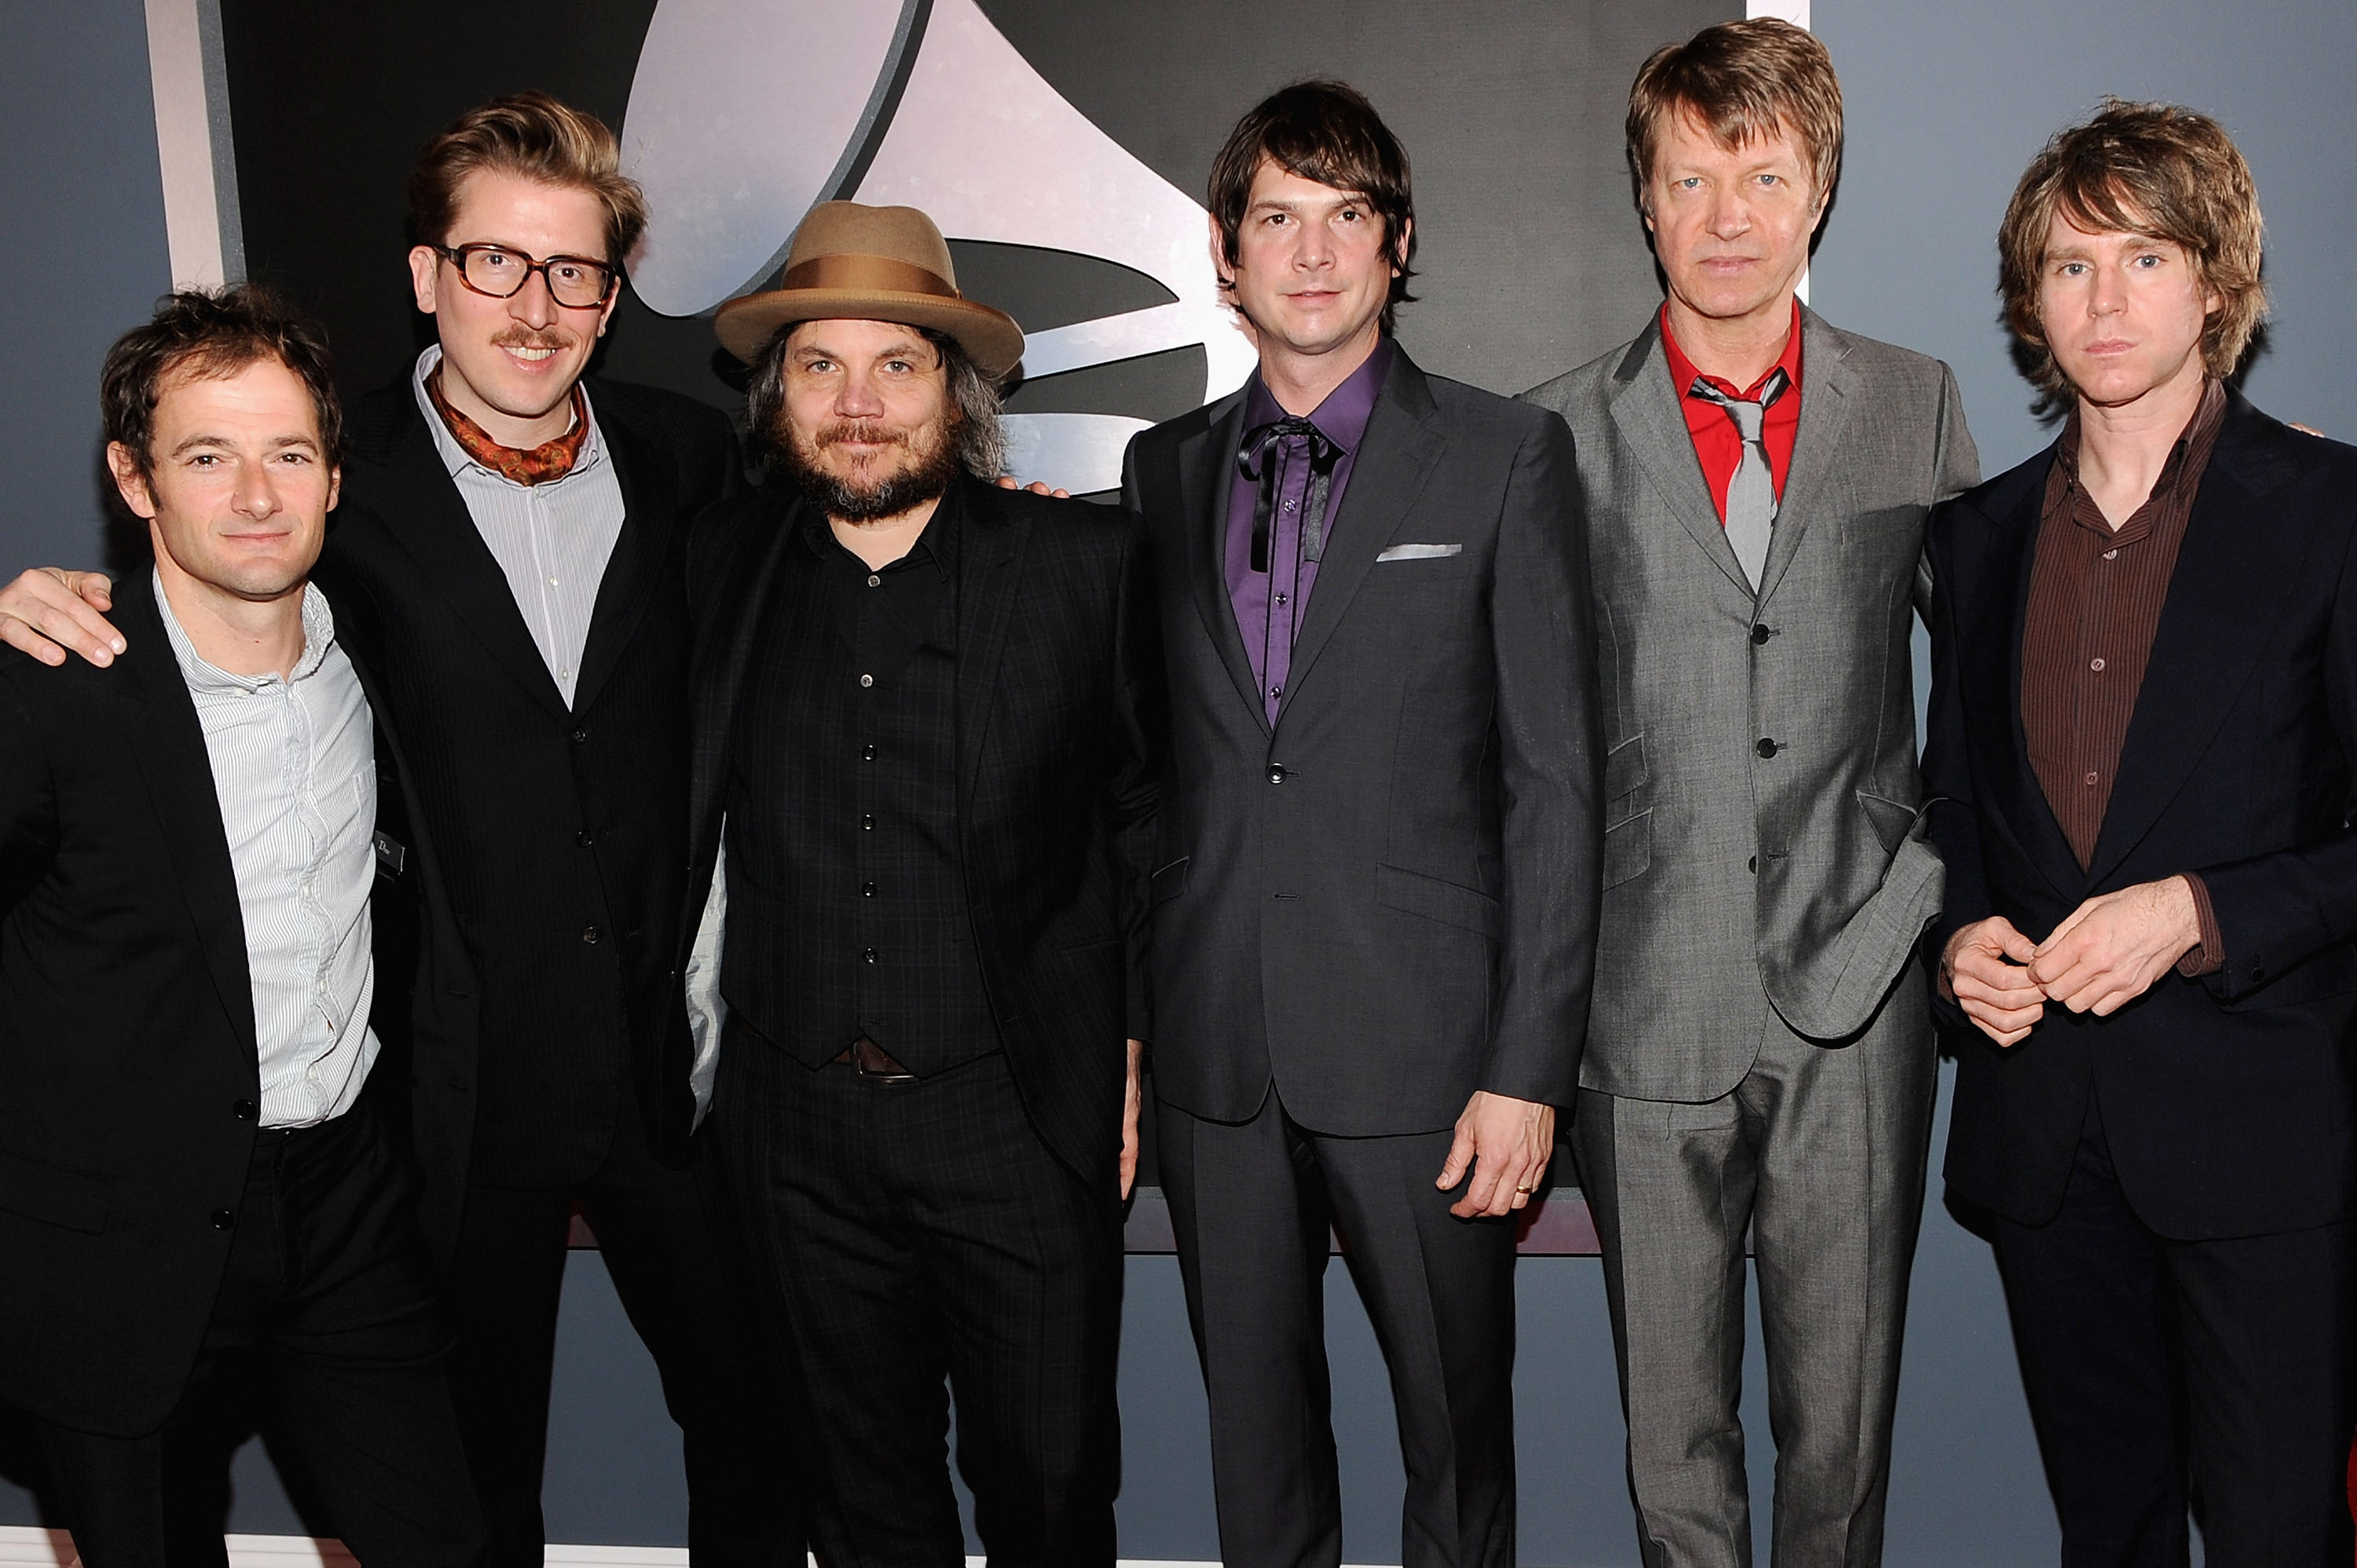 LOS ANGELES, CA - FEBRUARY 12:  (L-R) Musicians John Stirratt, Mikael Jorgensen, Jeff Tweedy, Glenn Kotche, Nels Cline, and P